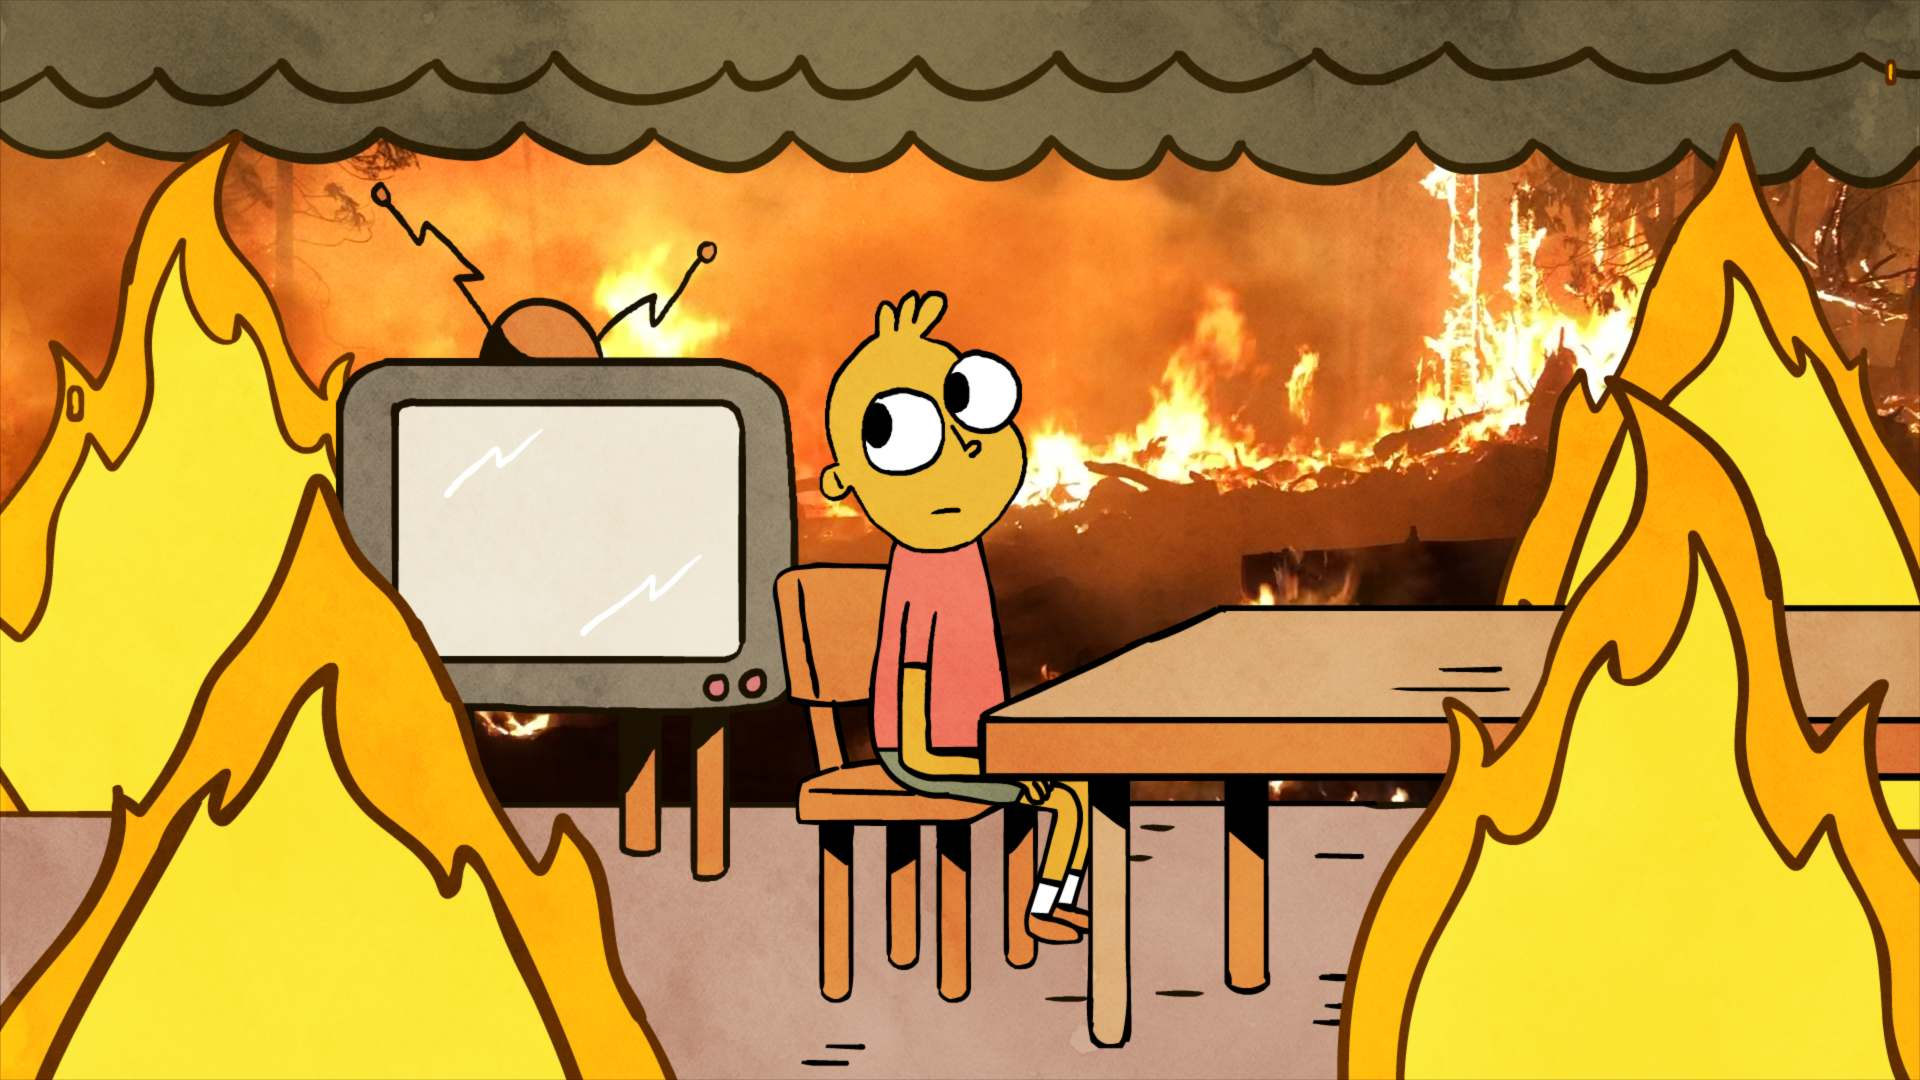 this is fine flames engulfing